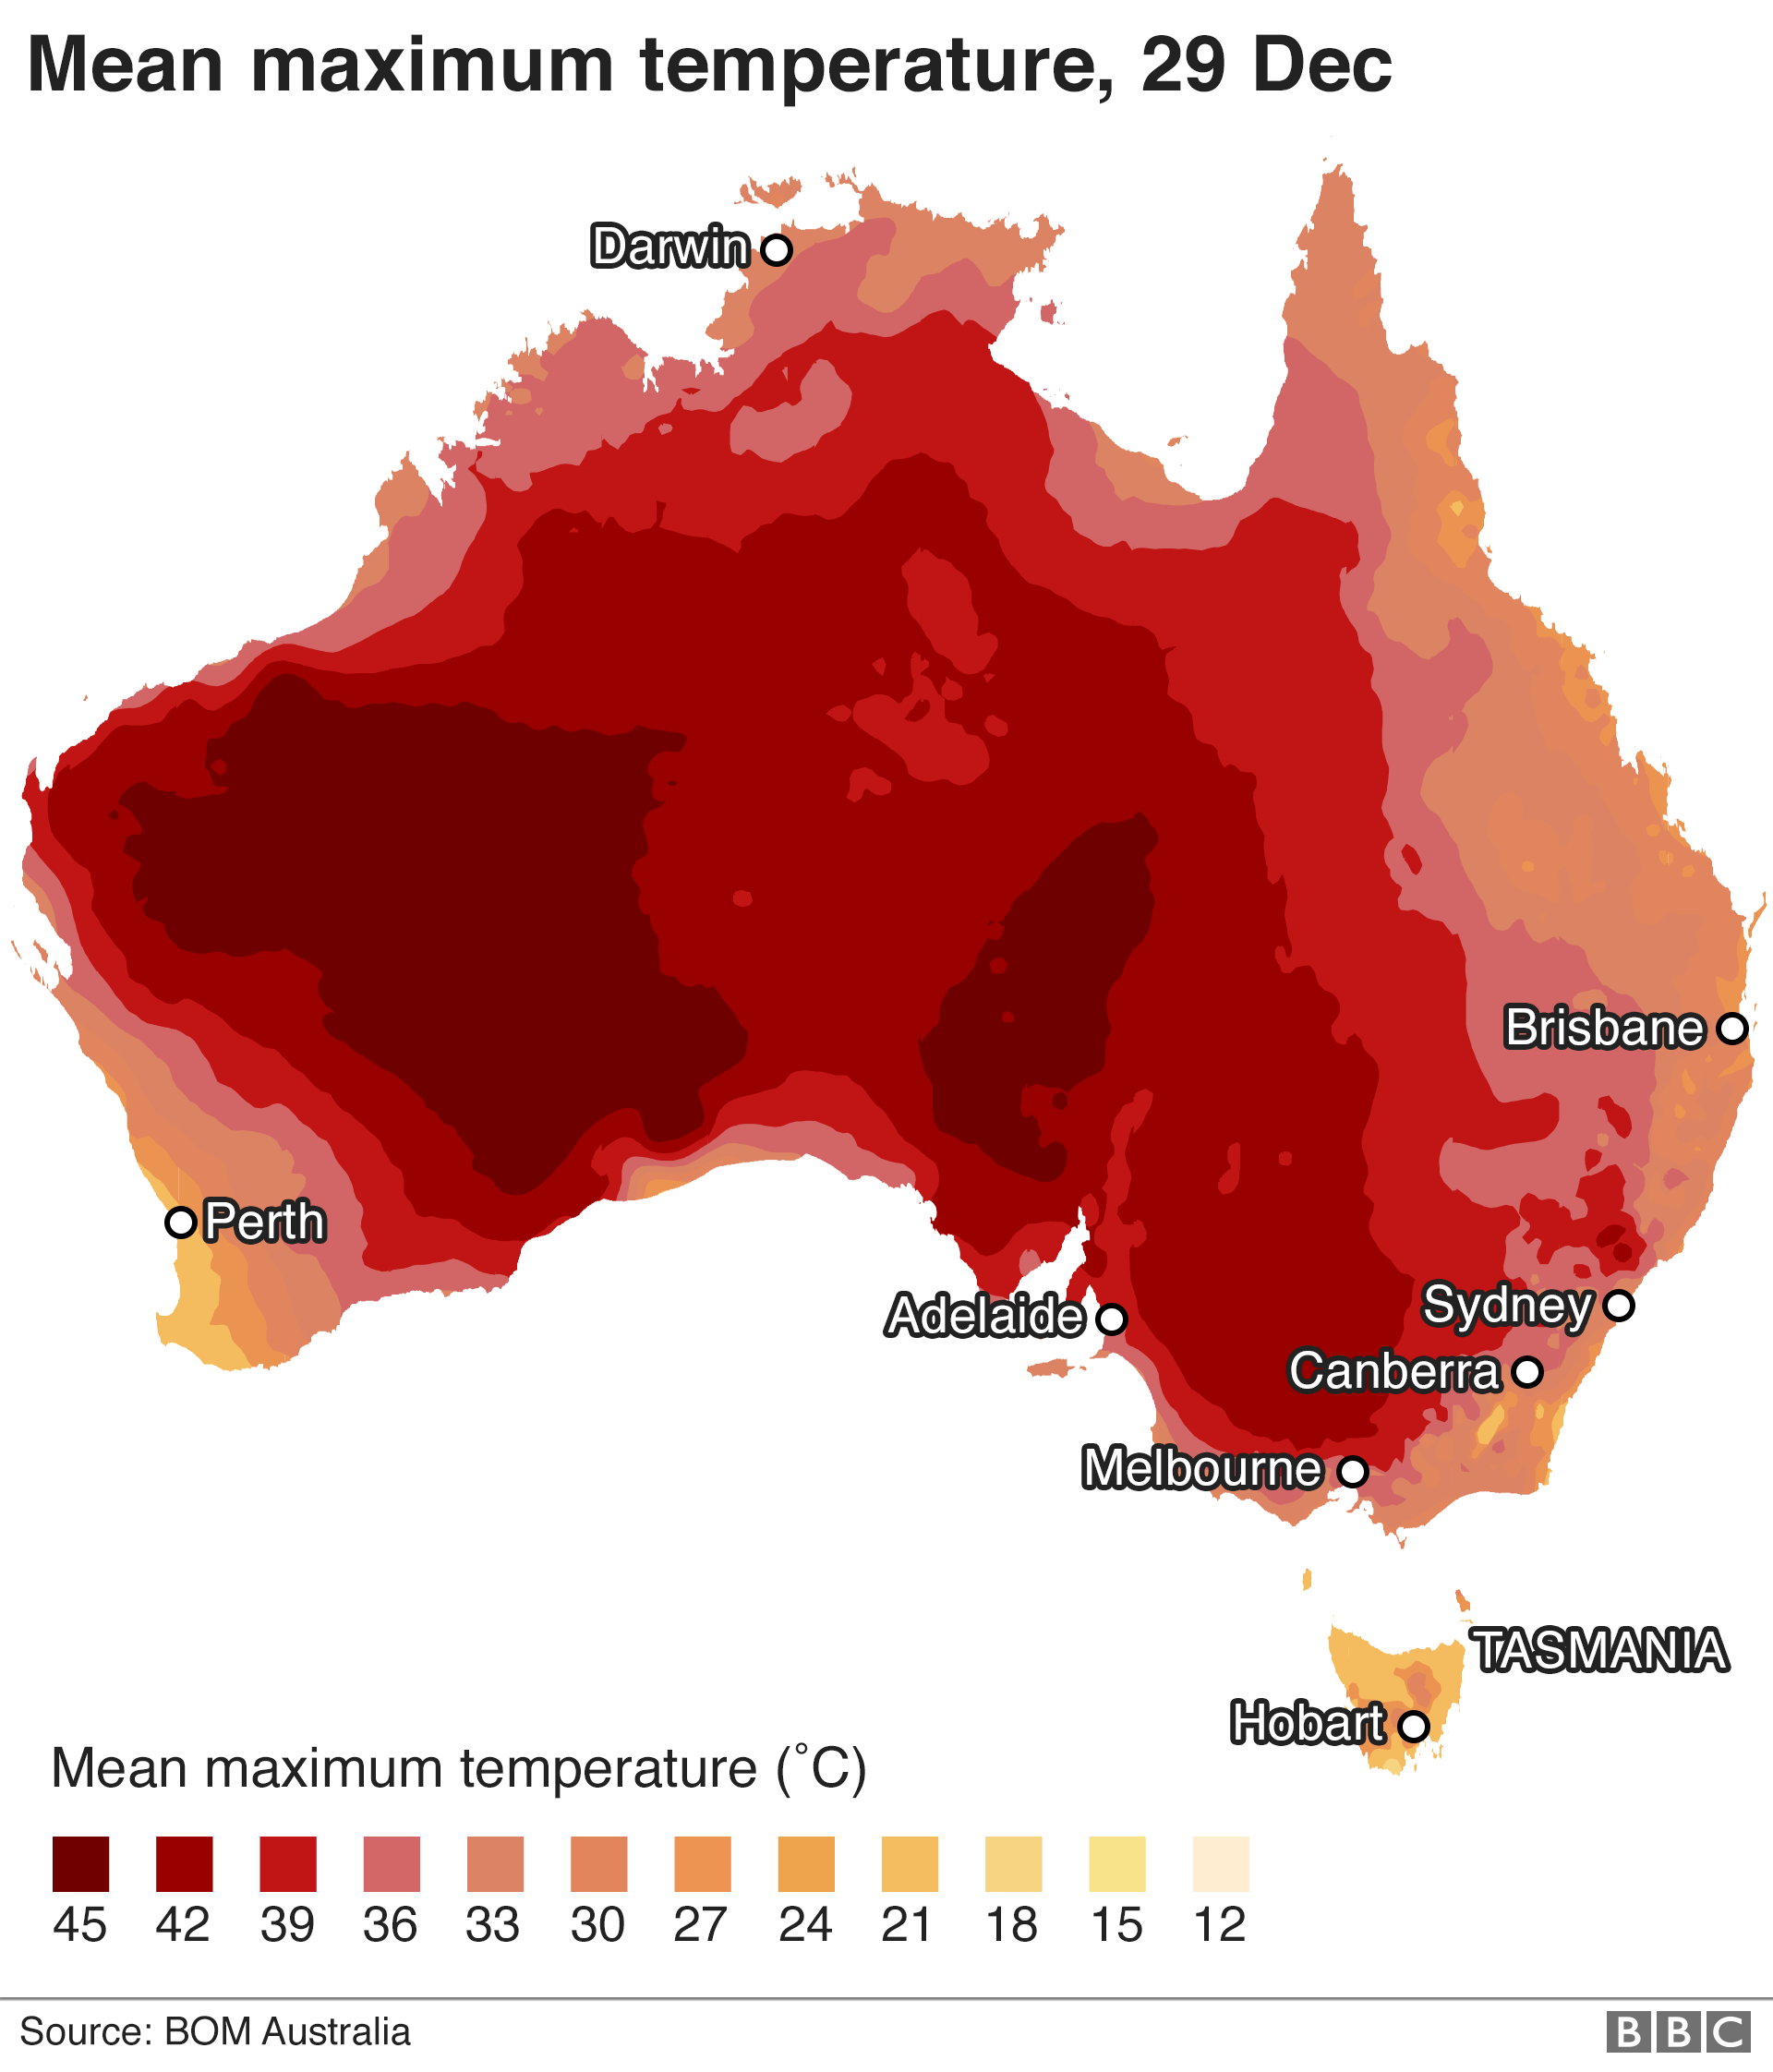 Map showing mean maximum temperatures across Australia for 29 December 2019